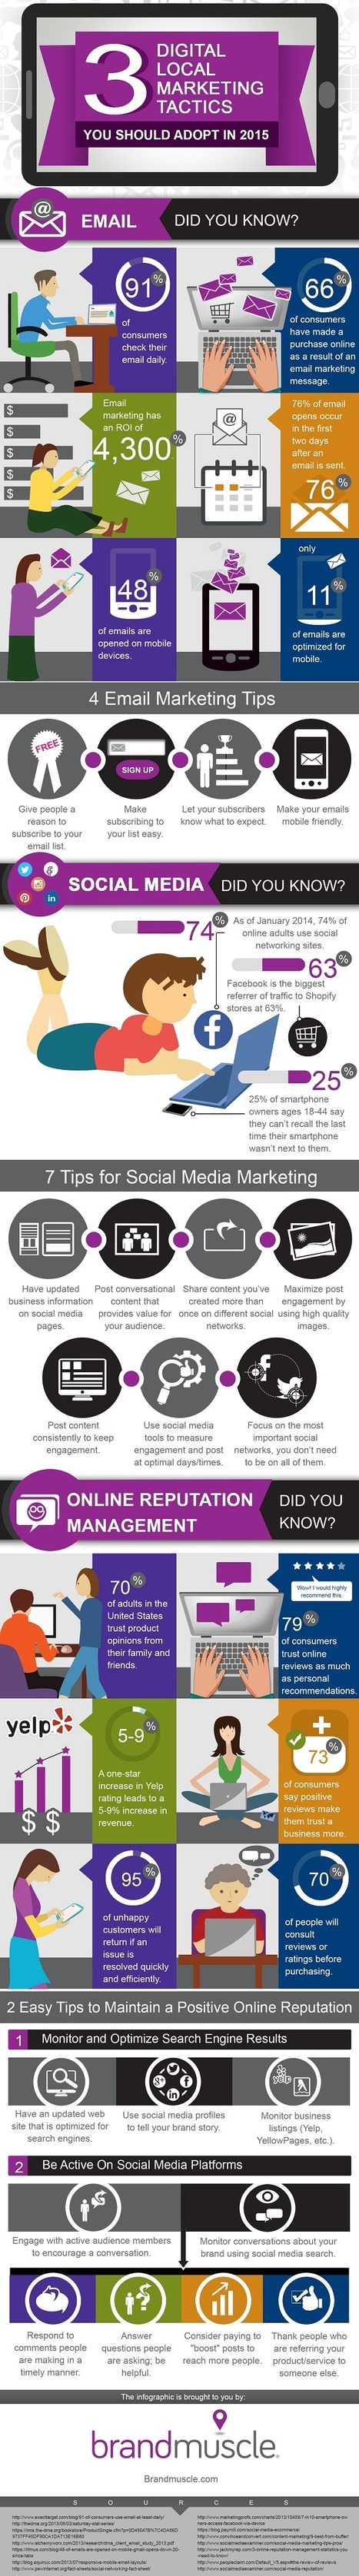 Social Media Marketing: 3 Digital Local Marketing Tactics You Must Use in 2015 | Estrategias de Social Media Marketing: | Scoop.it